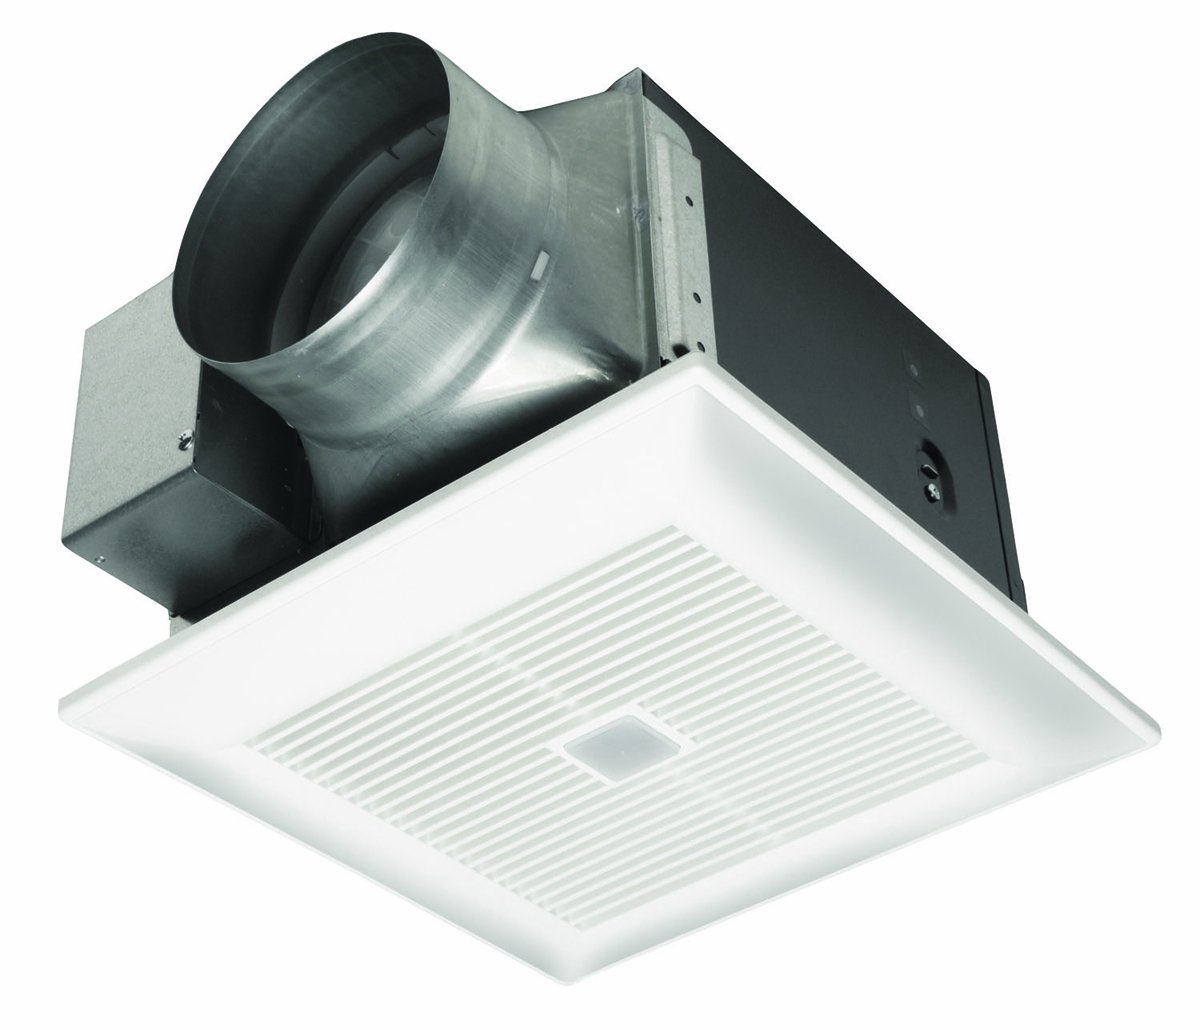 Cook bathroom exhaust fans - Panasonic Fv 13vkm3 Whispergreen 130 Cfm Ceiling Mounted Ventilation Fan With Dc Motor Variable Speed Controls Motion Sensor White Built In Household